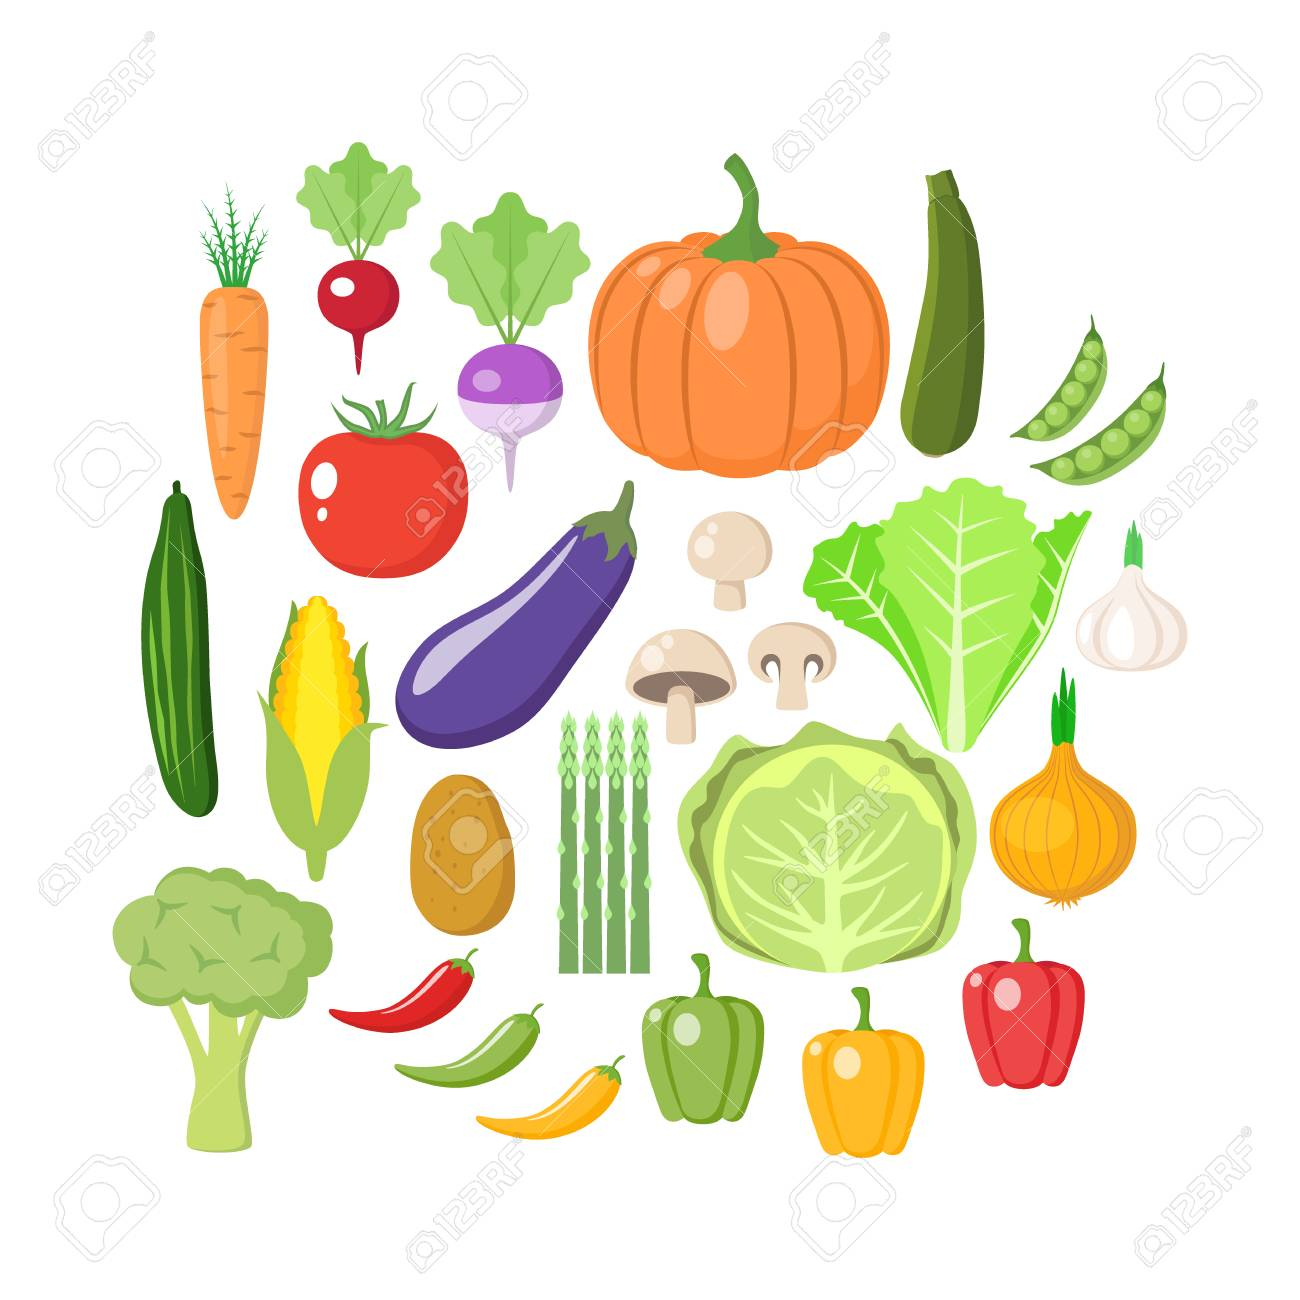 Fruits and Vegetables Clipart to free download.